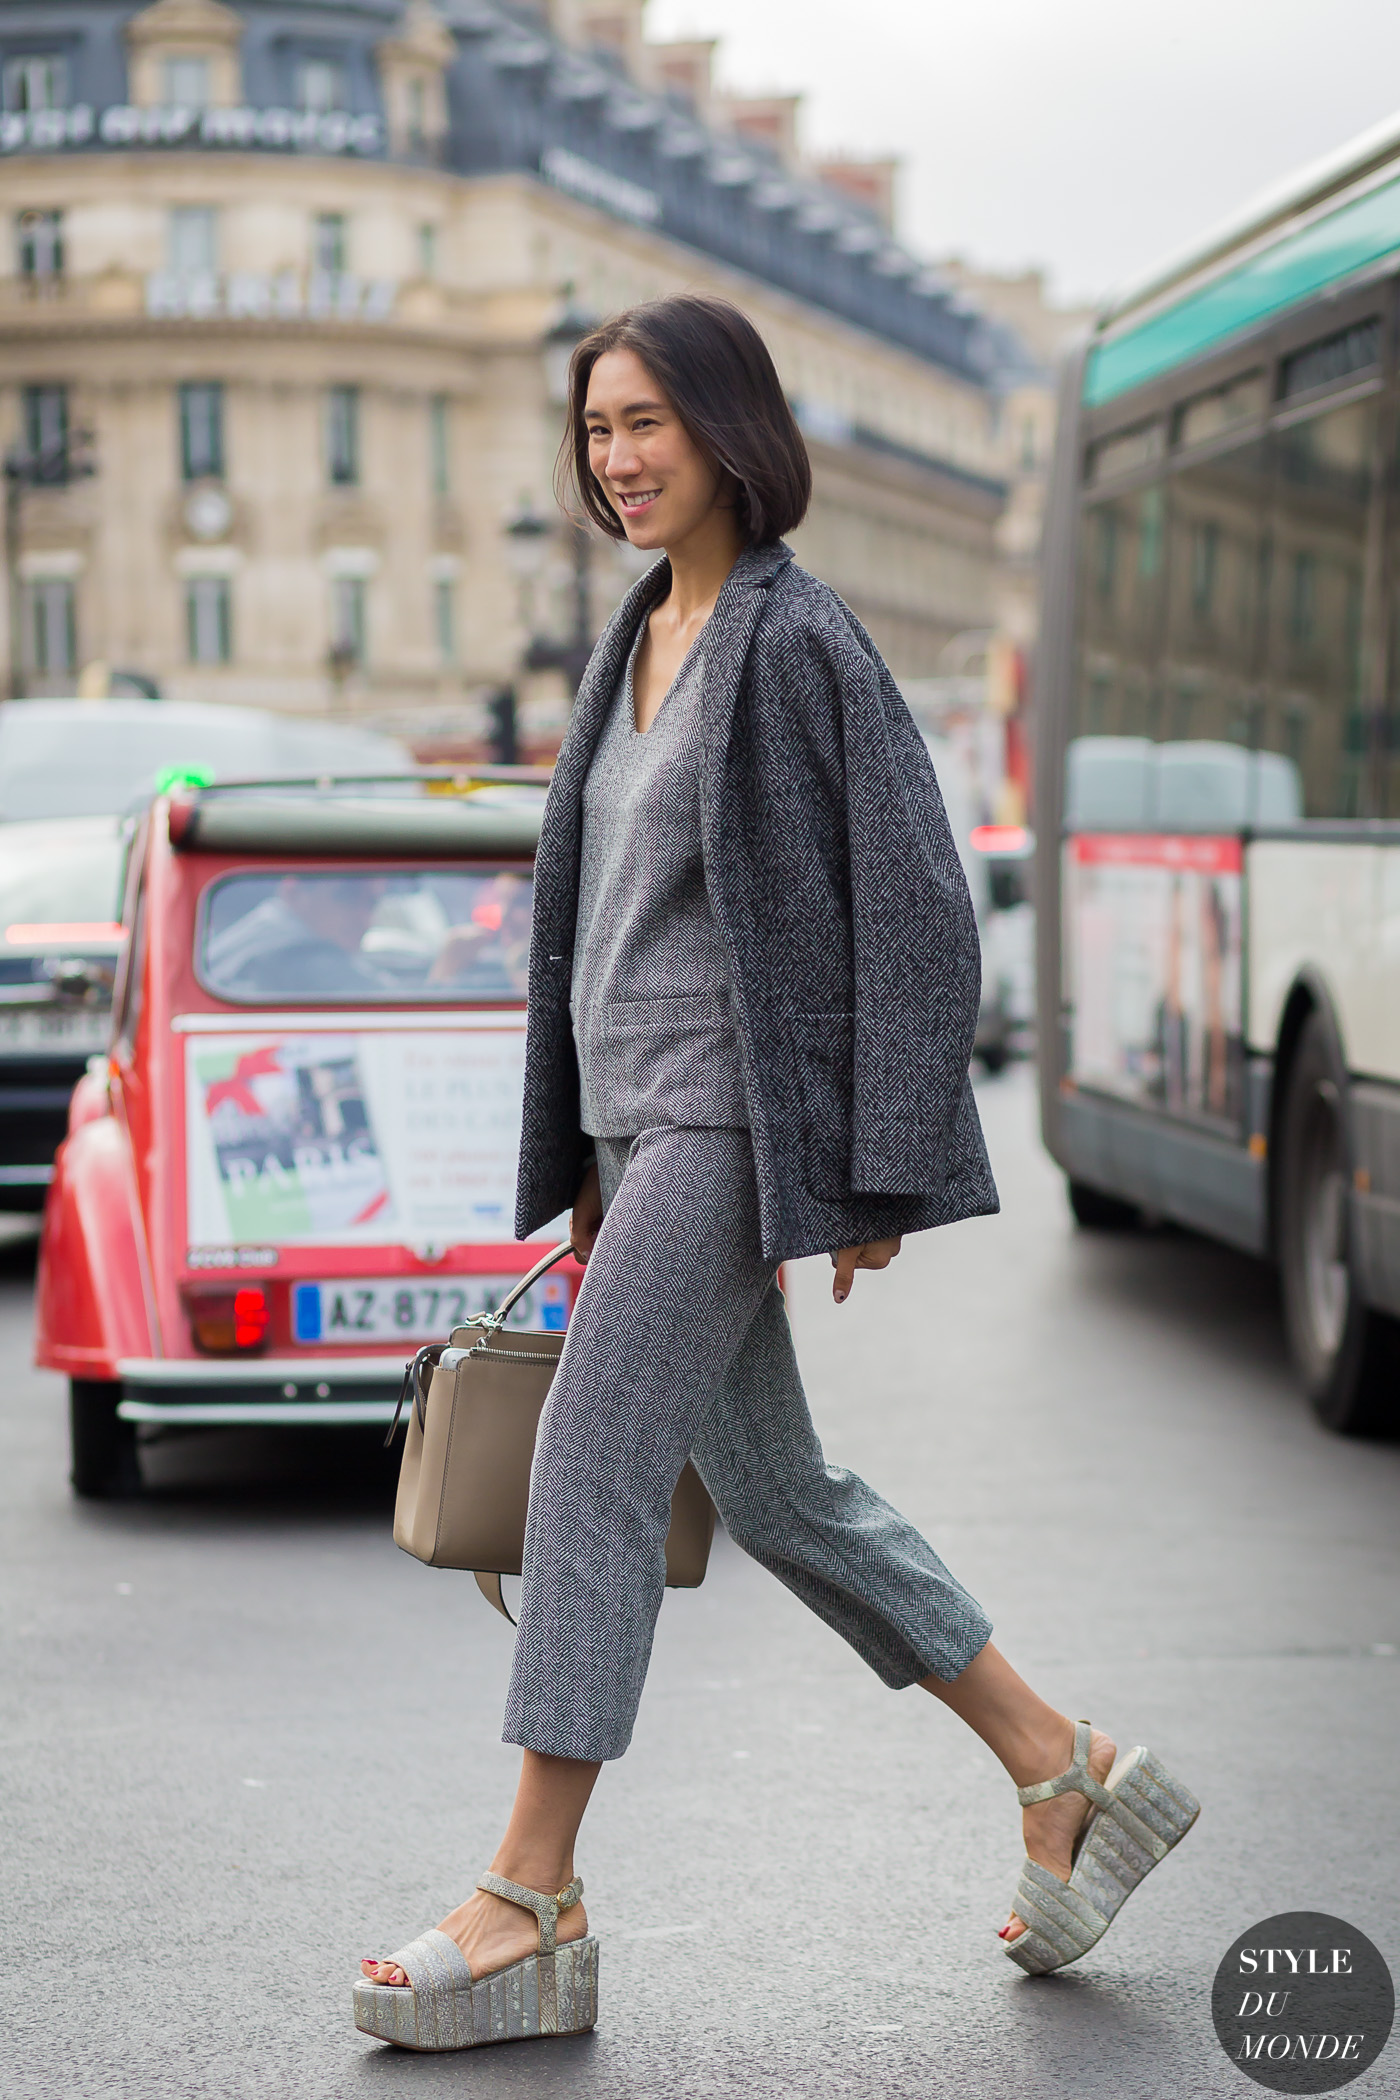 Eva Chen Street Style Street Fashion Streetsnaps by STYLEDUMONDE Street Style Fashion Photography